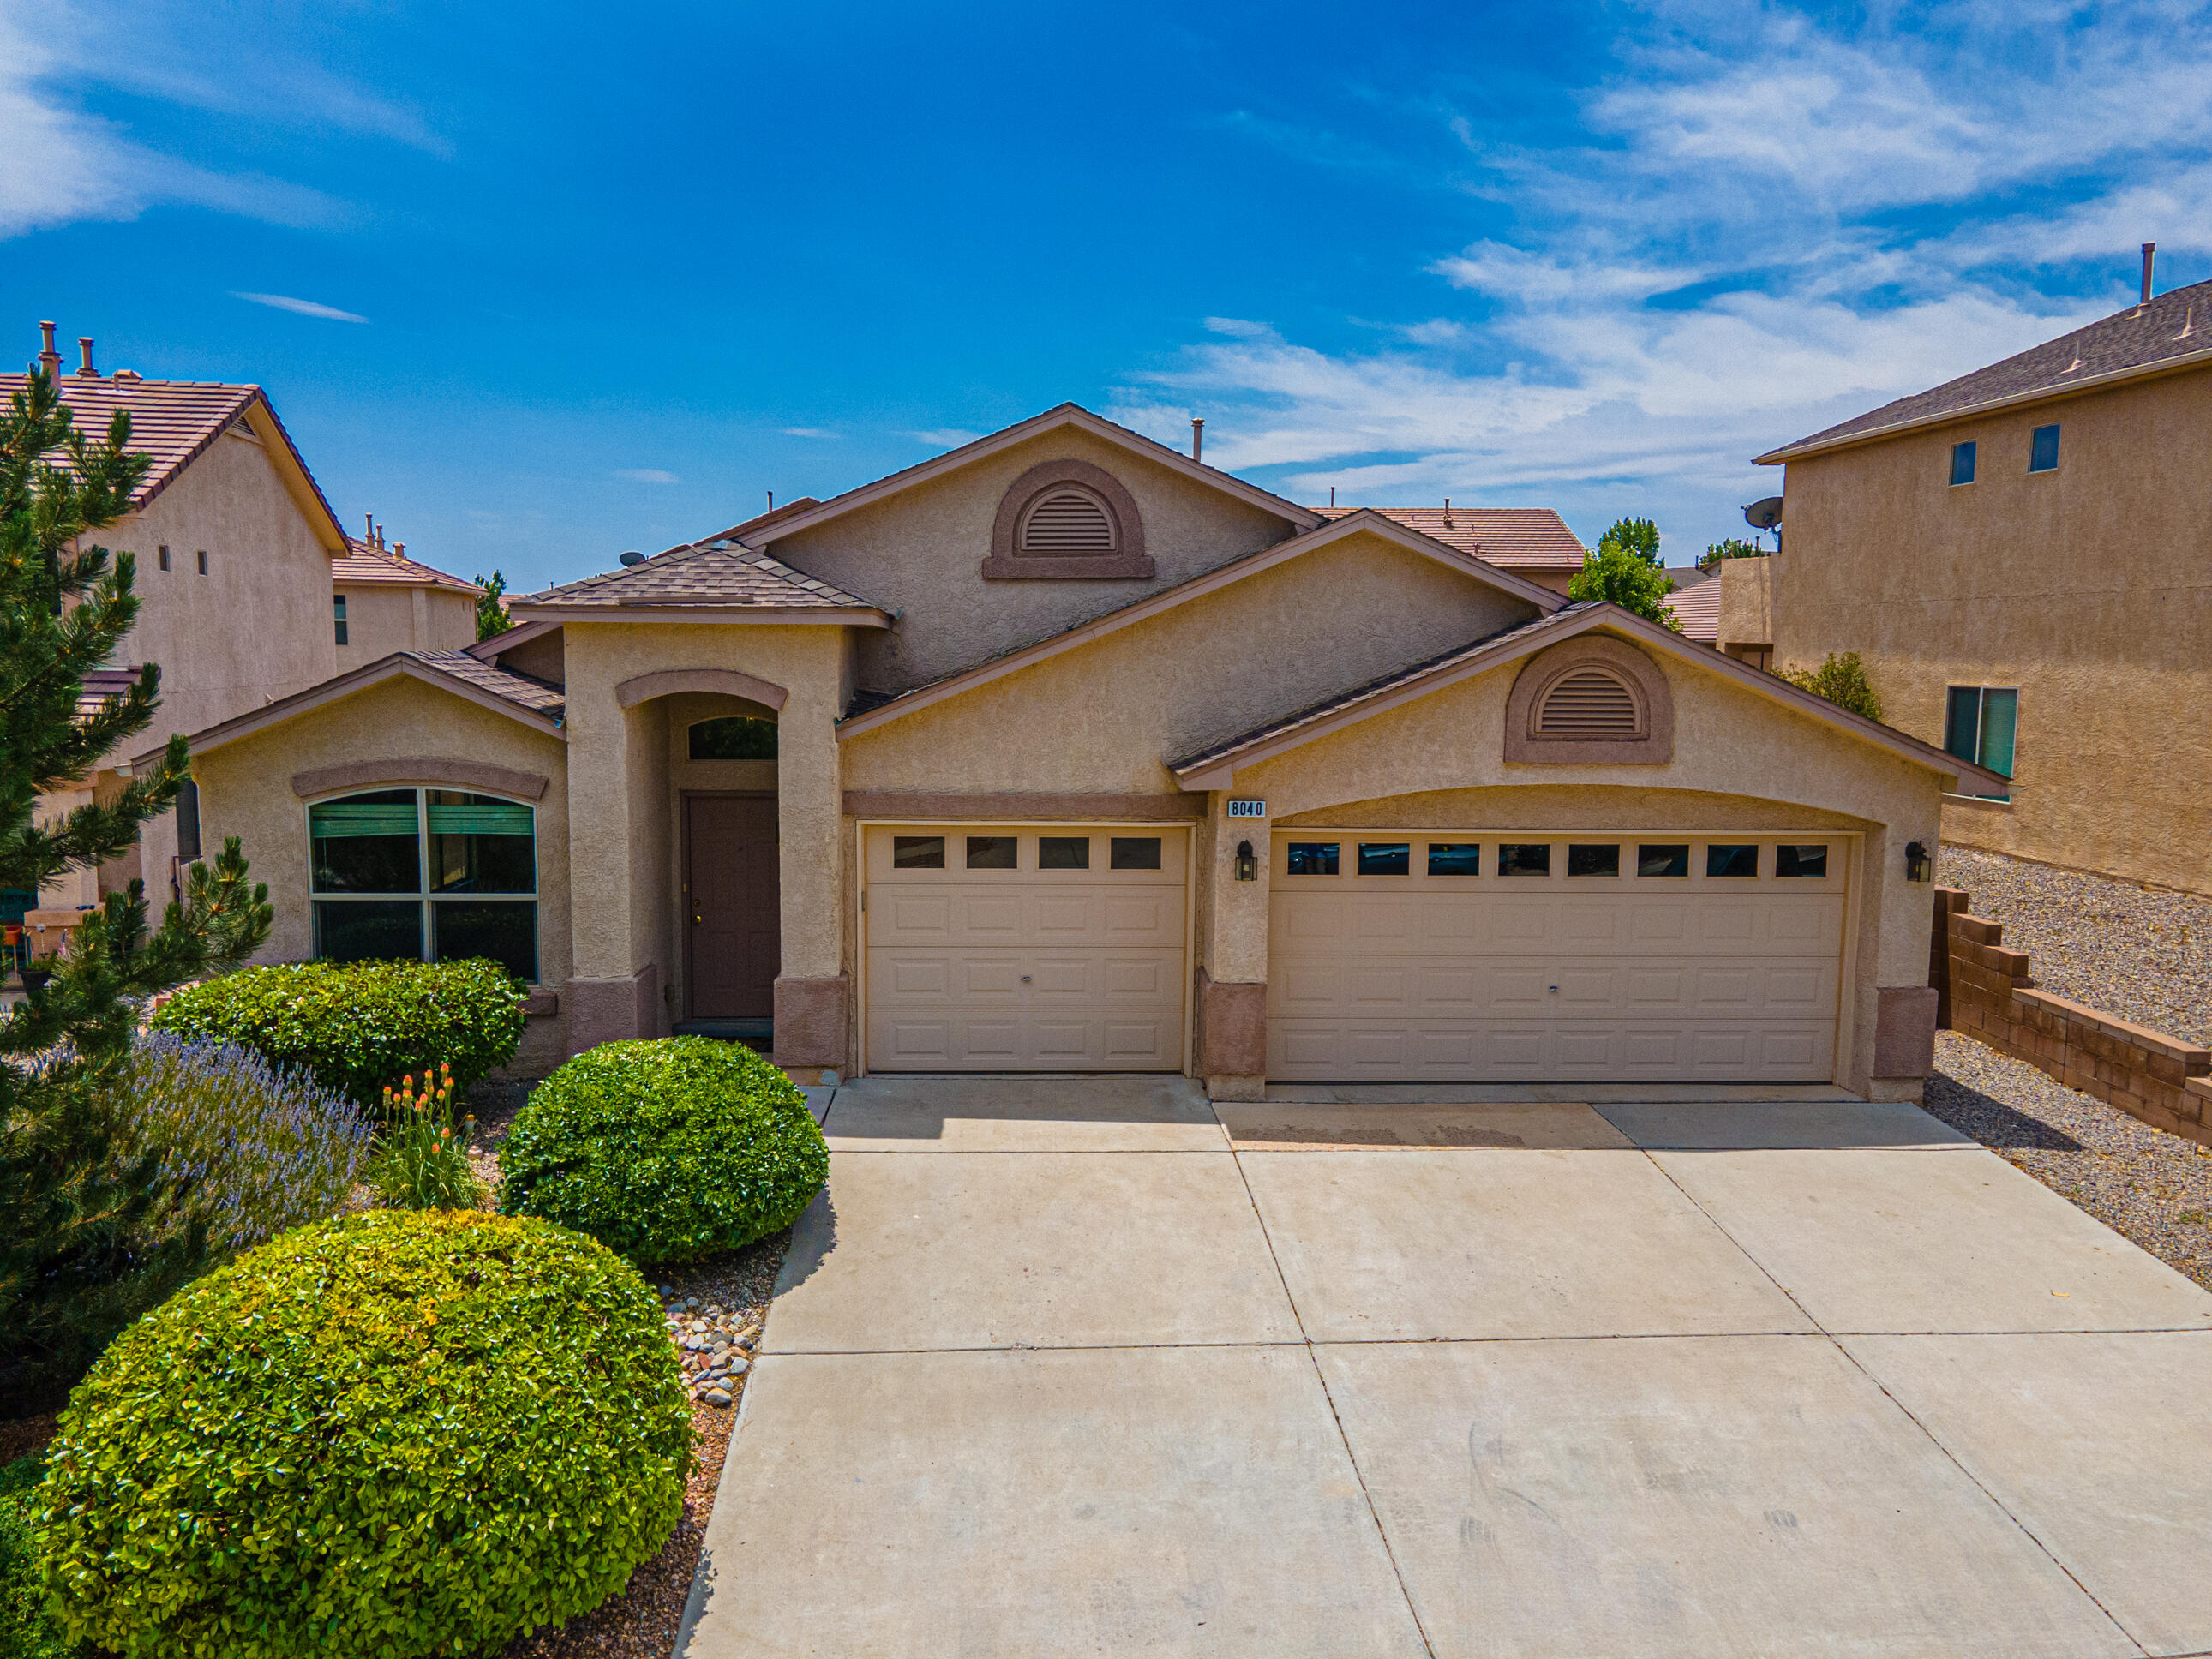 Beautiful One Story, One Owner Home in Ventana Ranch!! This light and bright home with 2141SF offers  4 bedrooms, 2 full baths, 3 car garage & Vaulted Ceilings! Features include:  Corian solid surface countertops in kitchen, cabinet pull outs, Kitchen Nook, Gas Cooktop,  New Microwave (2021), Water Heater is 3 years old, New Carpet in Master Bedroom, Faux Wood Blinds throughout, Ceiling Fans, Large Laundry room with cabinets, Walk-in pantry, Gas Fireplace, Dining room, Large family room, Living room and nicely landscaped front yard! All appliances stay including Refrigerator, Washer and Dryer.  Home has had continuous Culligan Soft Water service since new! Covered patio and gas stub out for BBQ. Garage doors are insulated! Backyard has irrigation valves and electric for future landscape!!